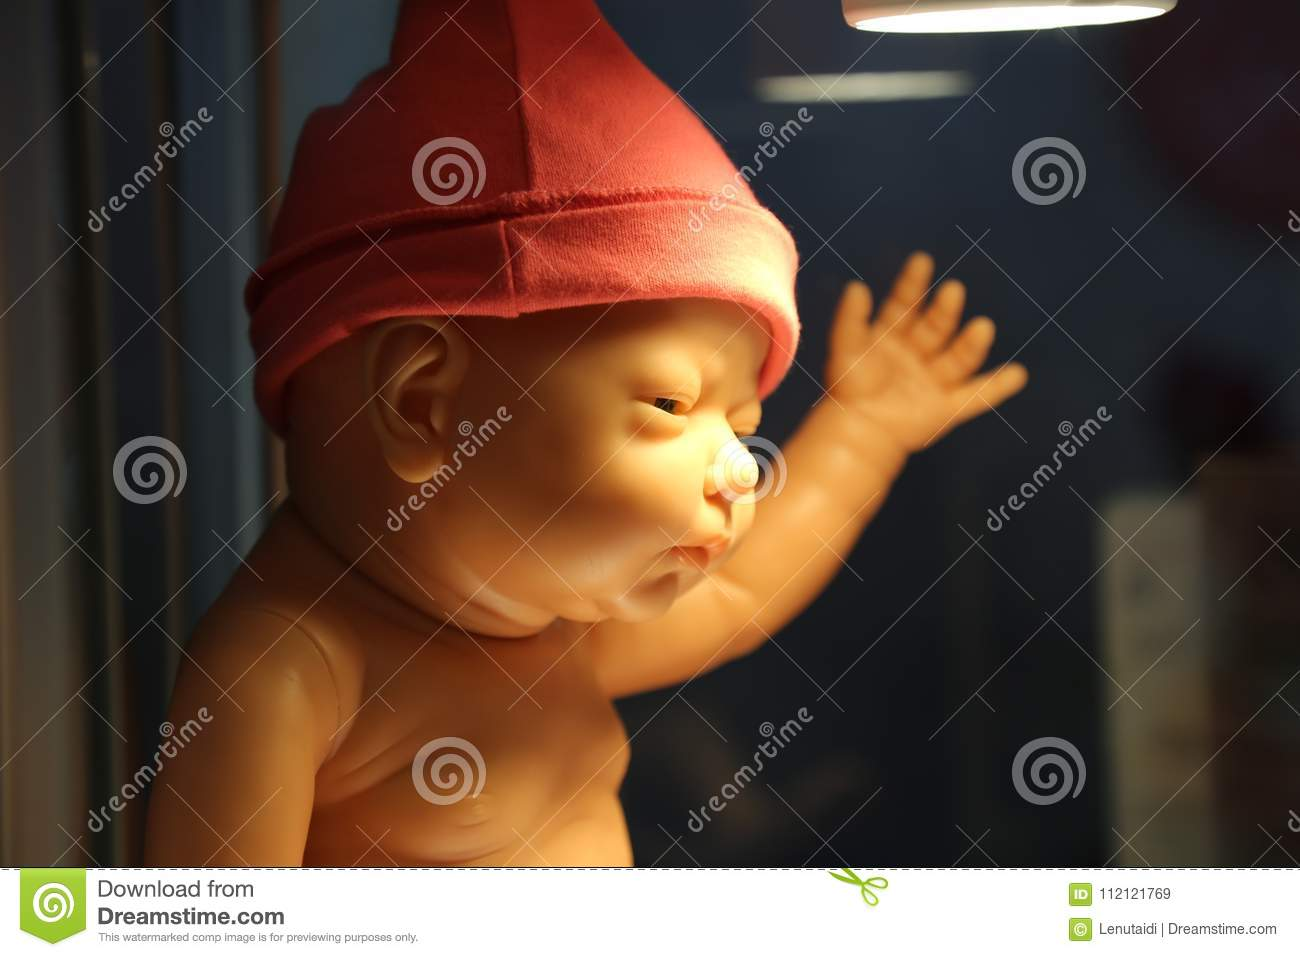 Baby dummy with fez stock image. Image of adorable a8a291bb075